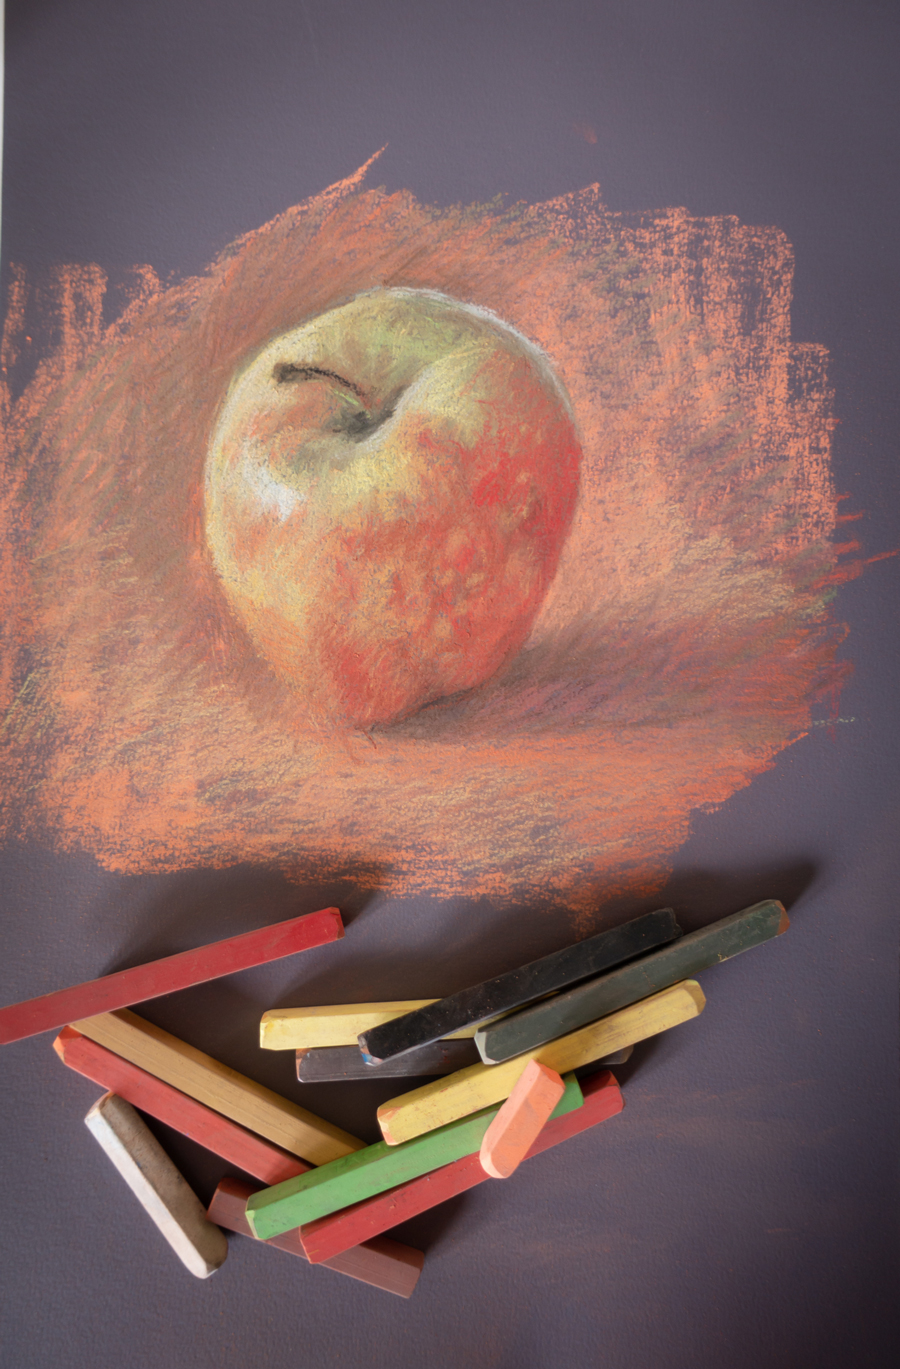 Sophie Ploeg's painting of an apple with Hard pastels